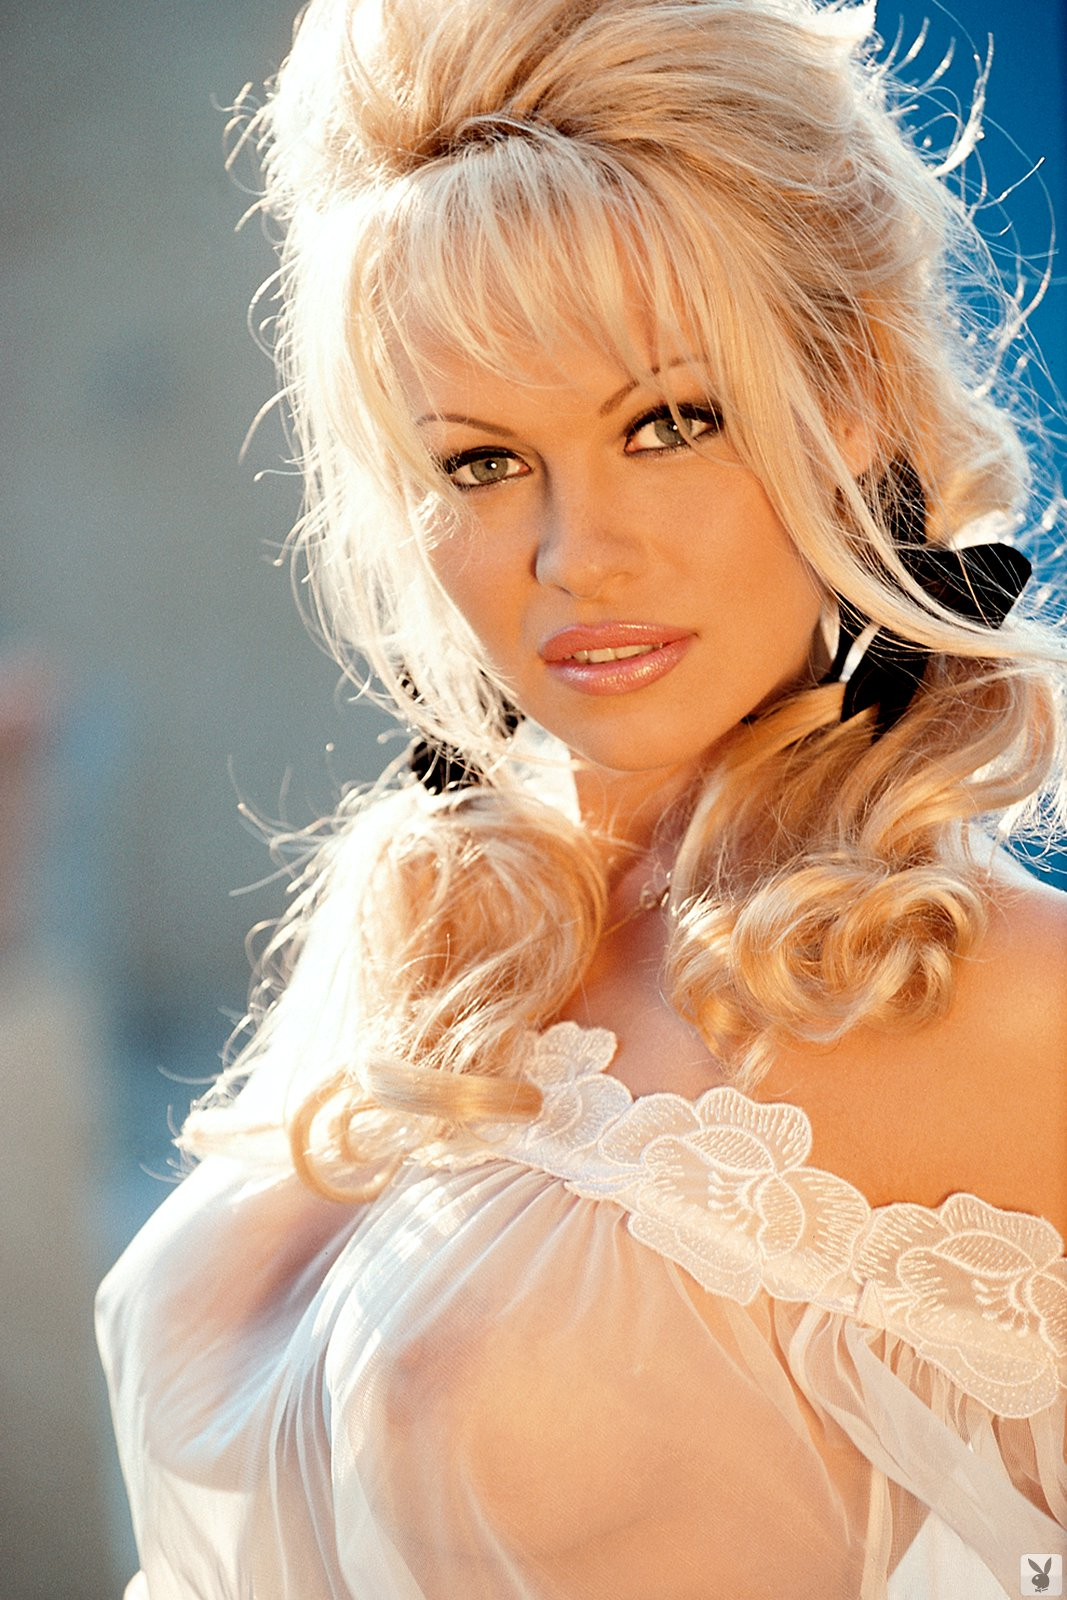 pamela_anderson_nude_naked_playboy_HQ_Pambition_1994